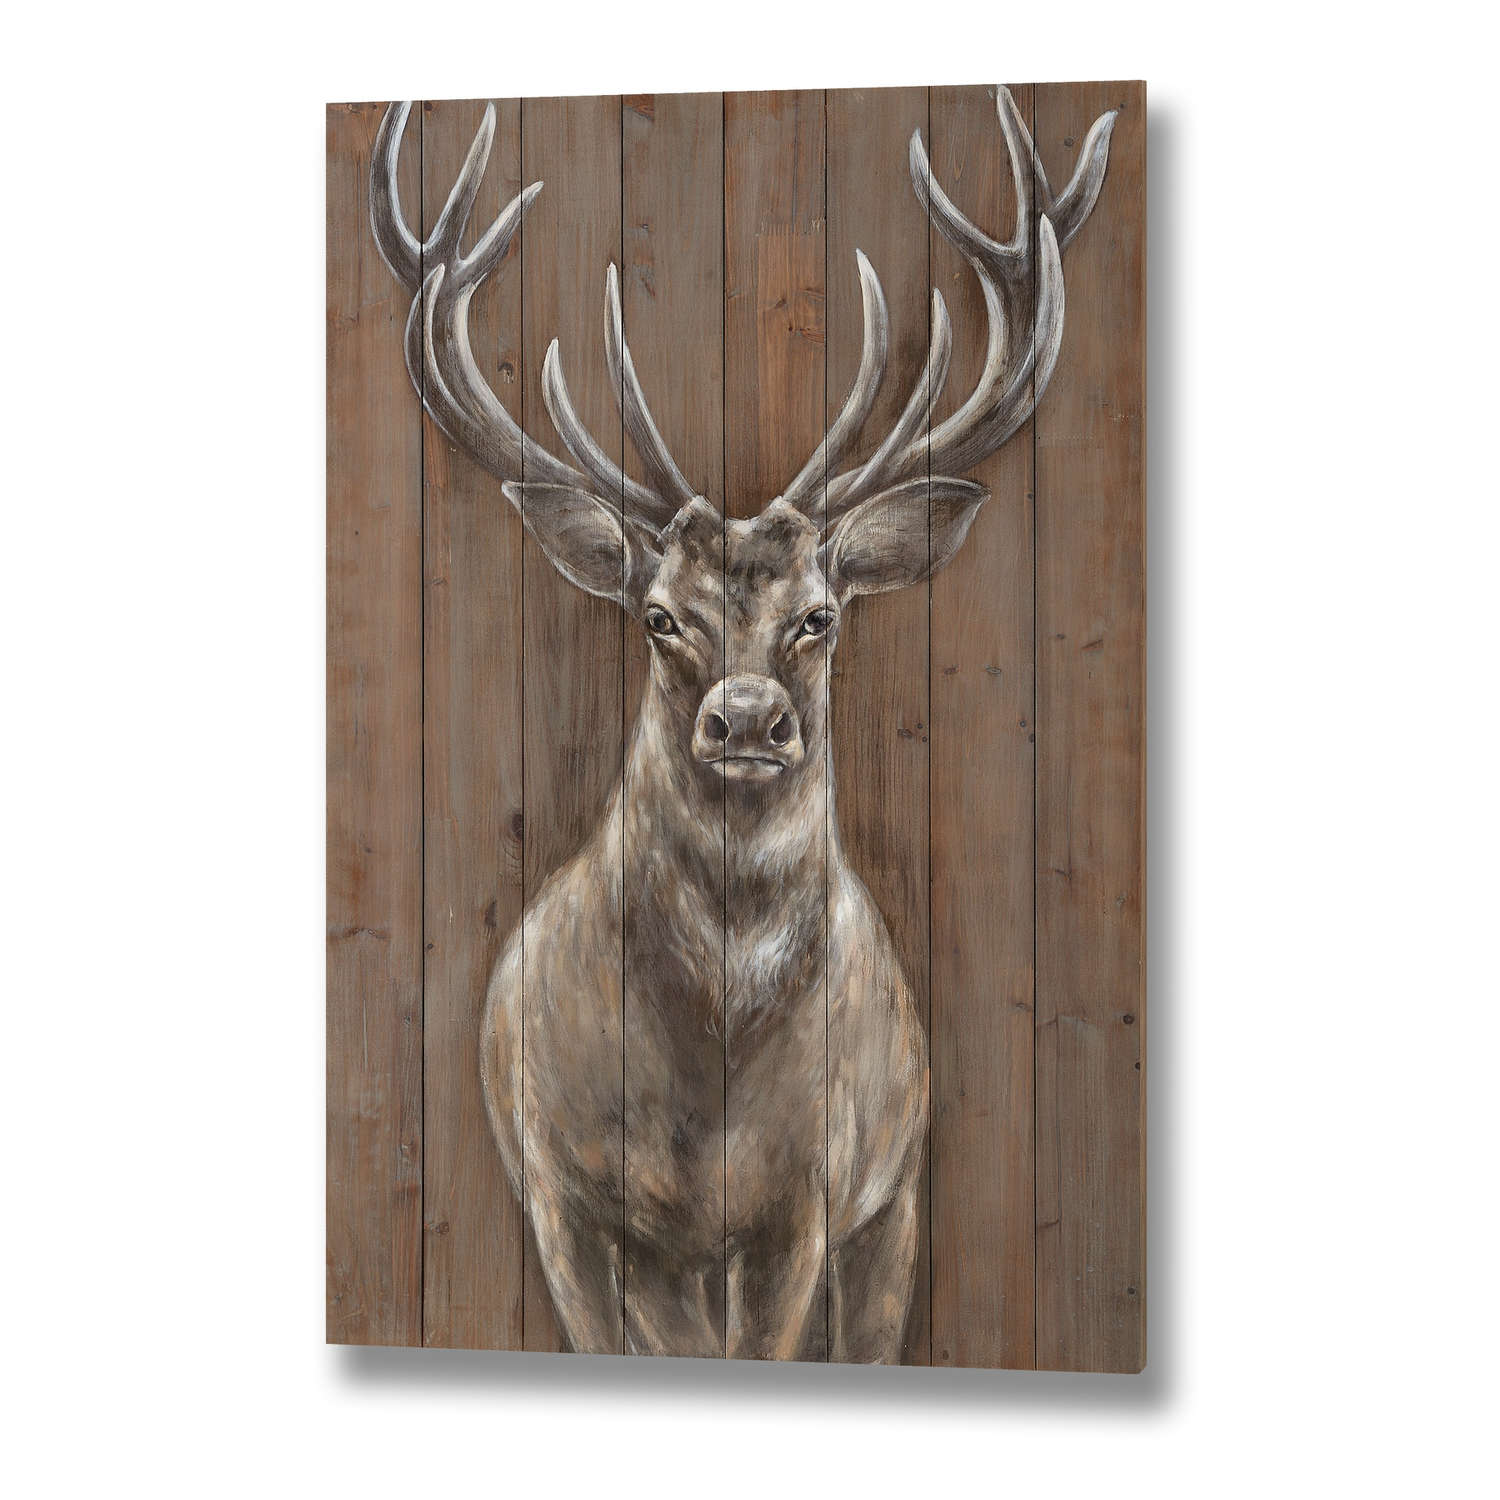 This Magnificent Stag Has Been Hand Painted Onto A Large